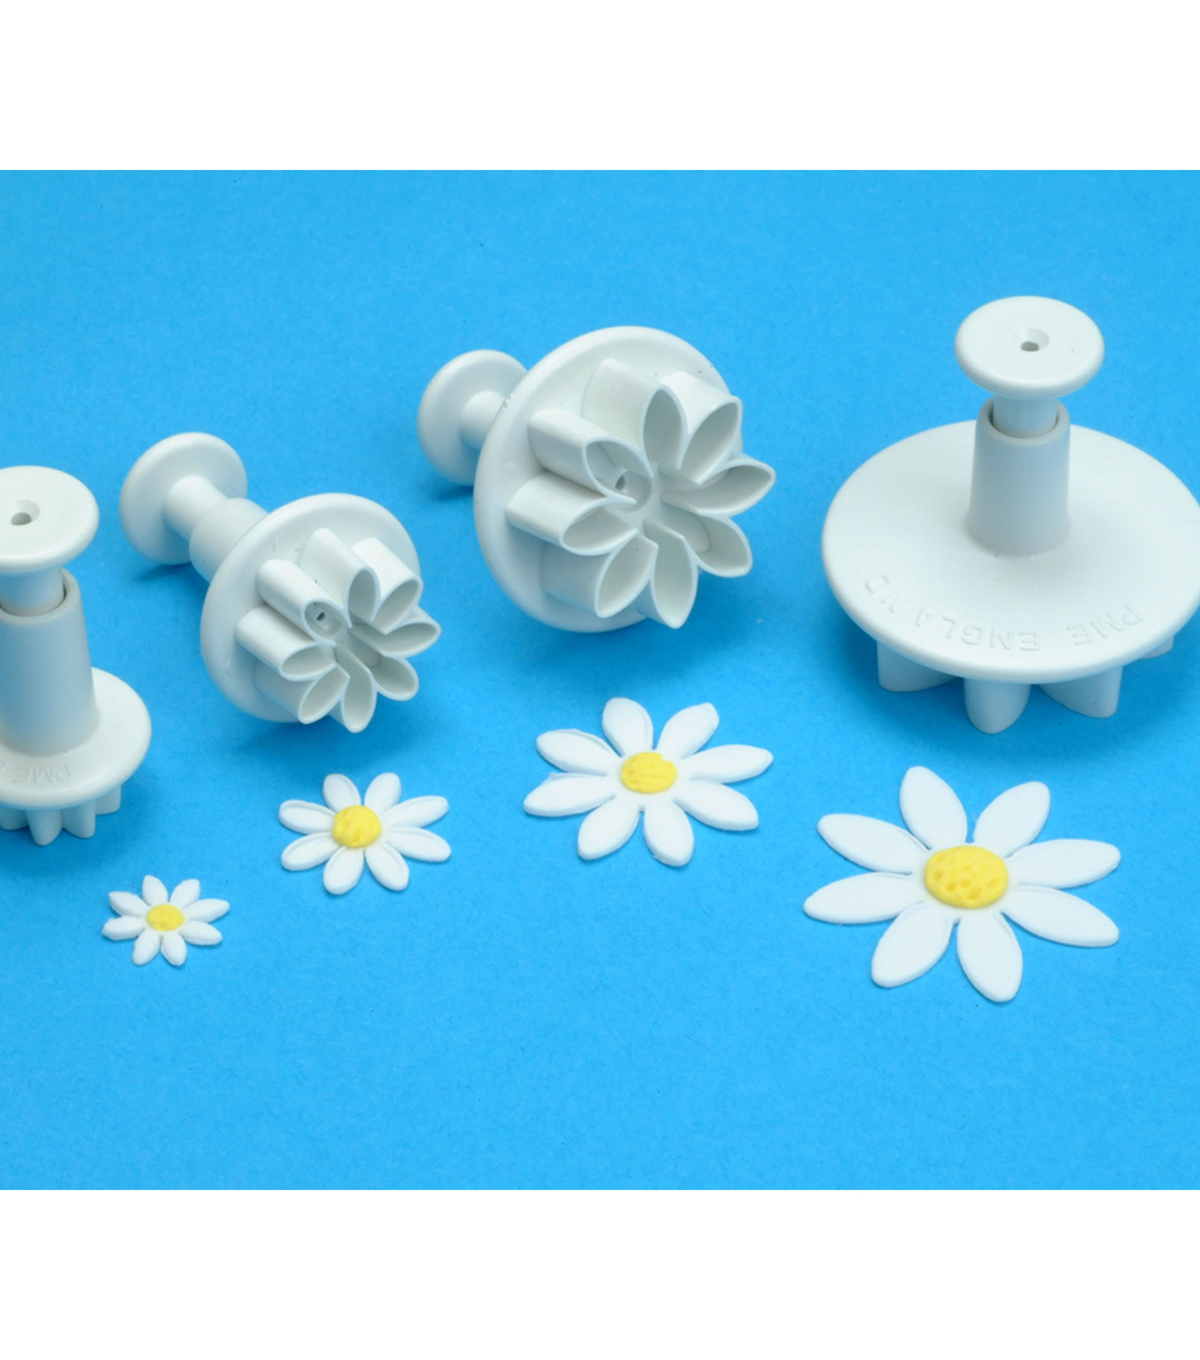 PME 4 Pack Plunger Cutters-Daisy Marguerite | JOANN